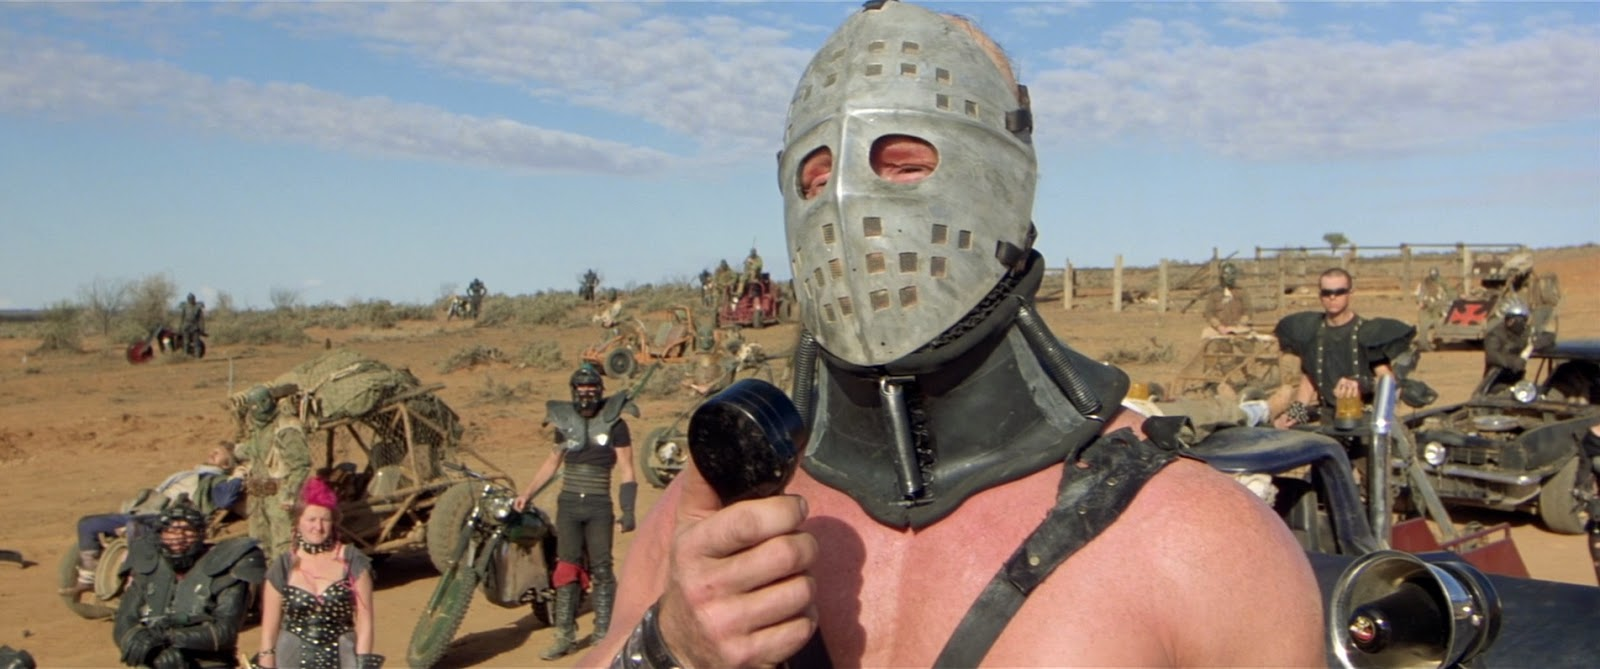 Mad Max Films – Kennedy Miller Productions Crossroads